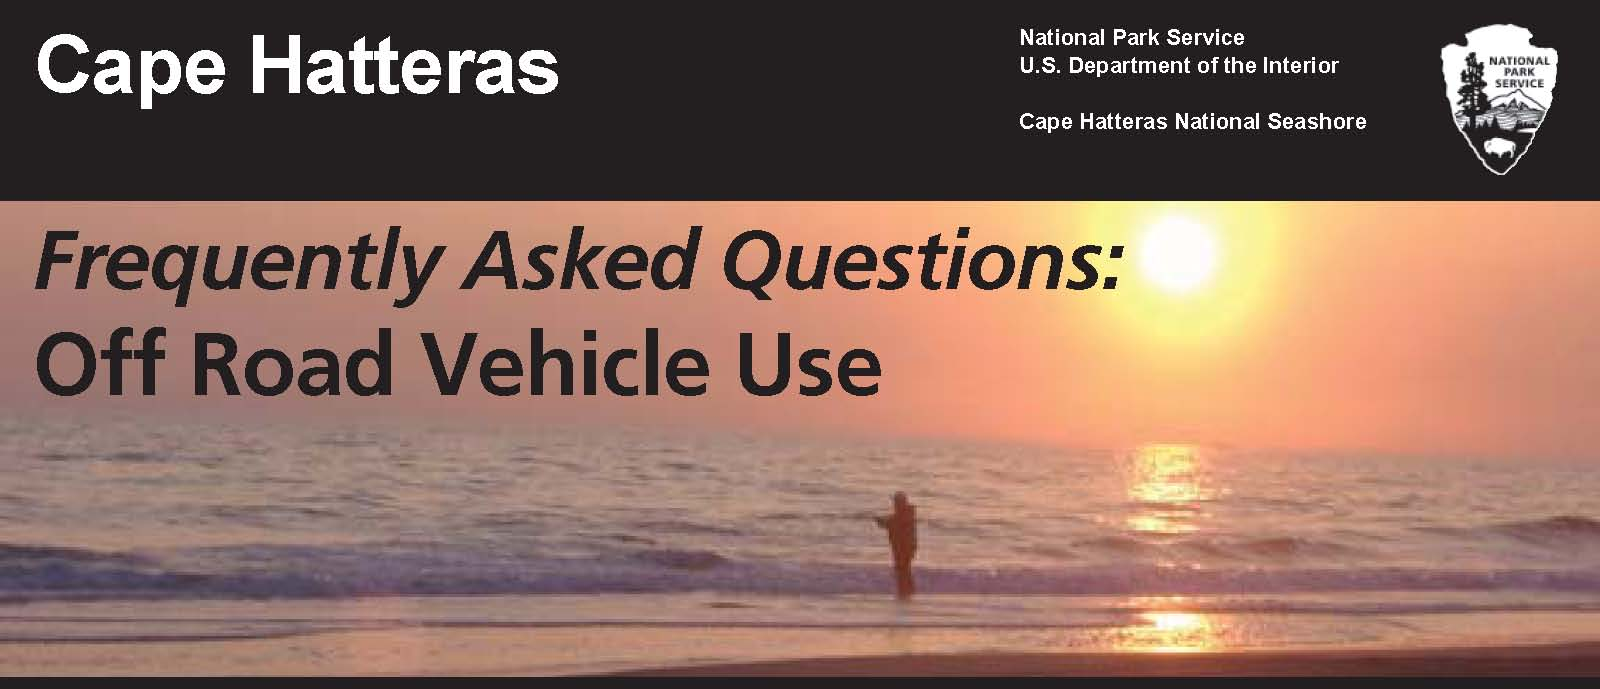 02-01-12 faq site bulletin for caha orv regulation_img_0